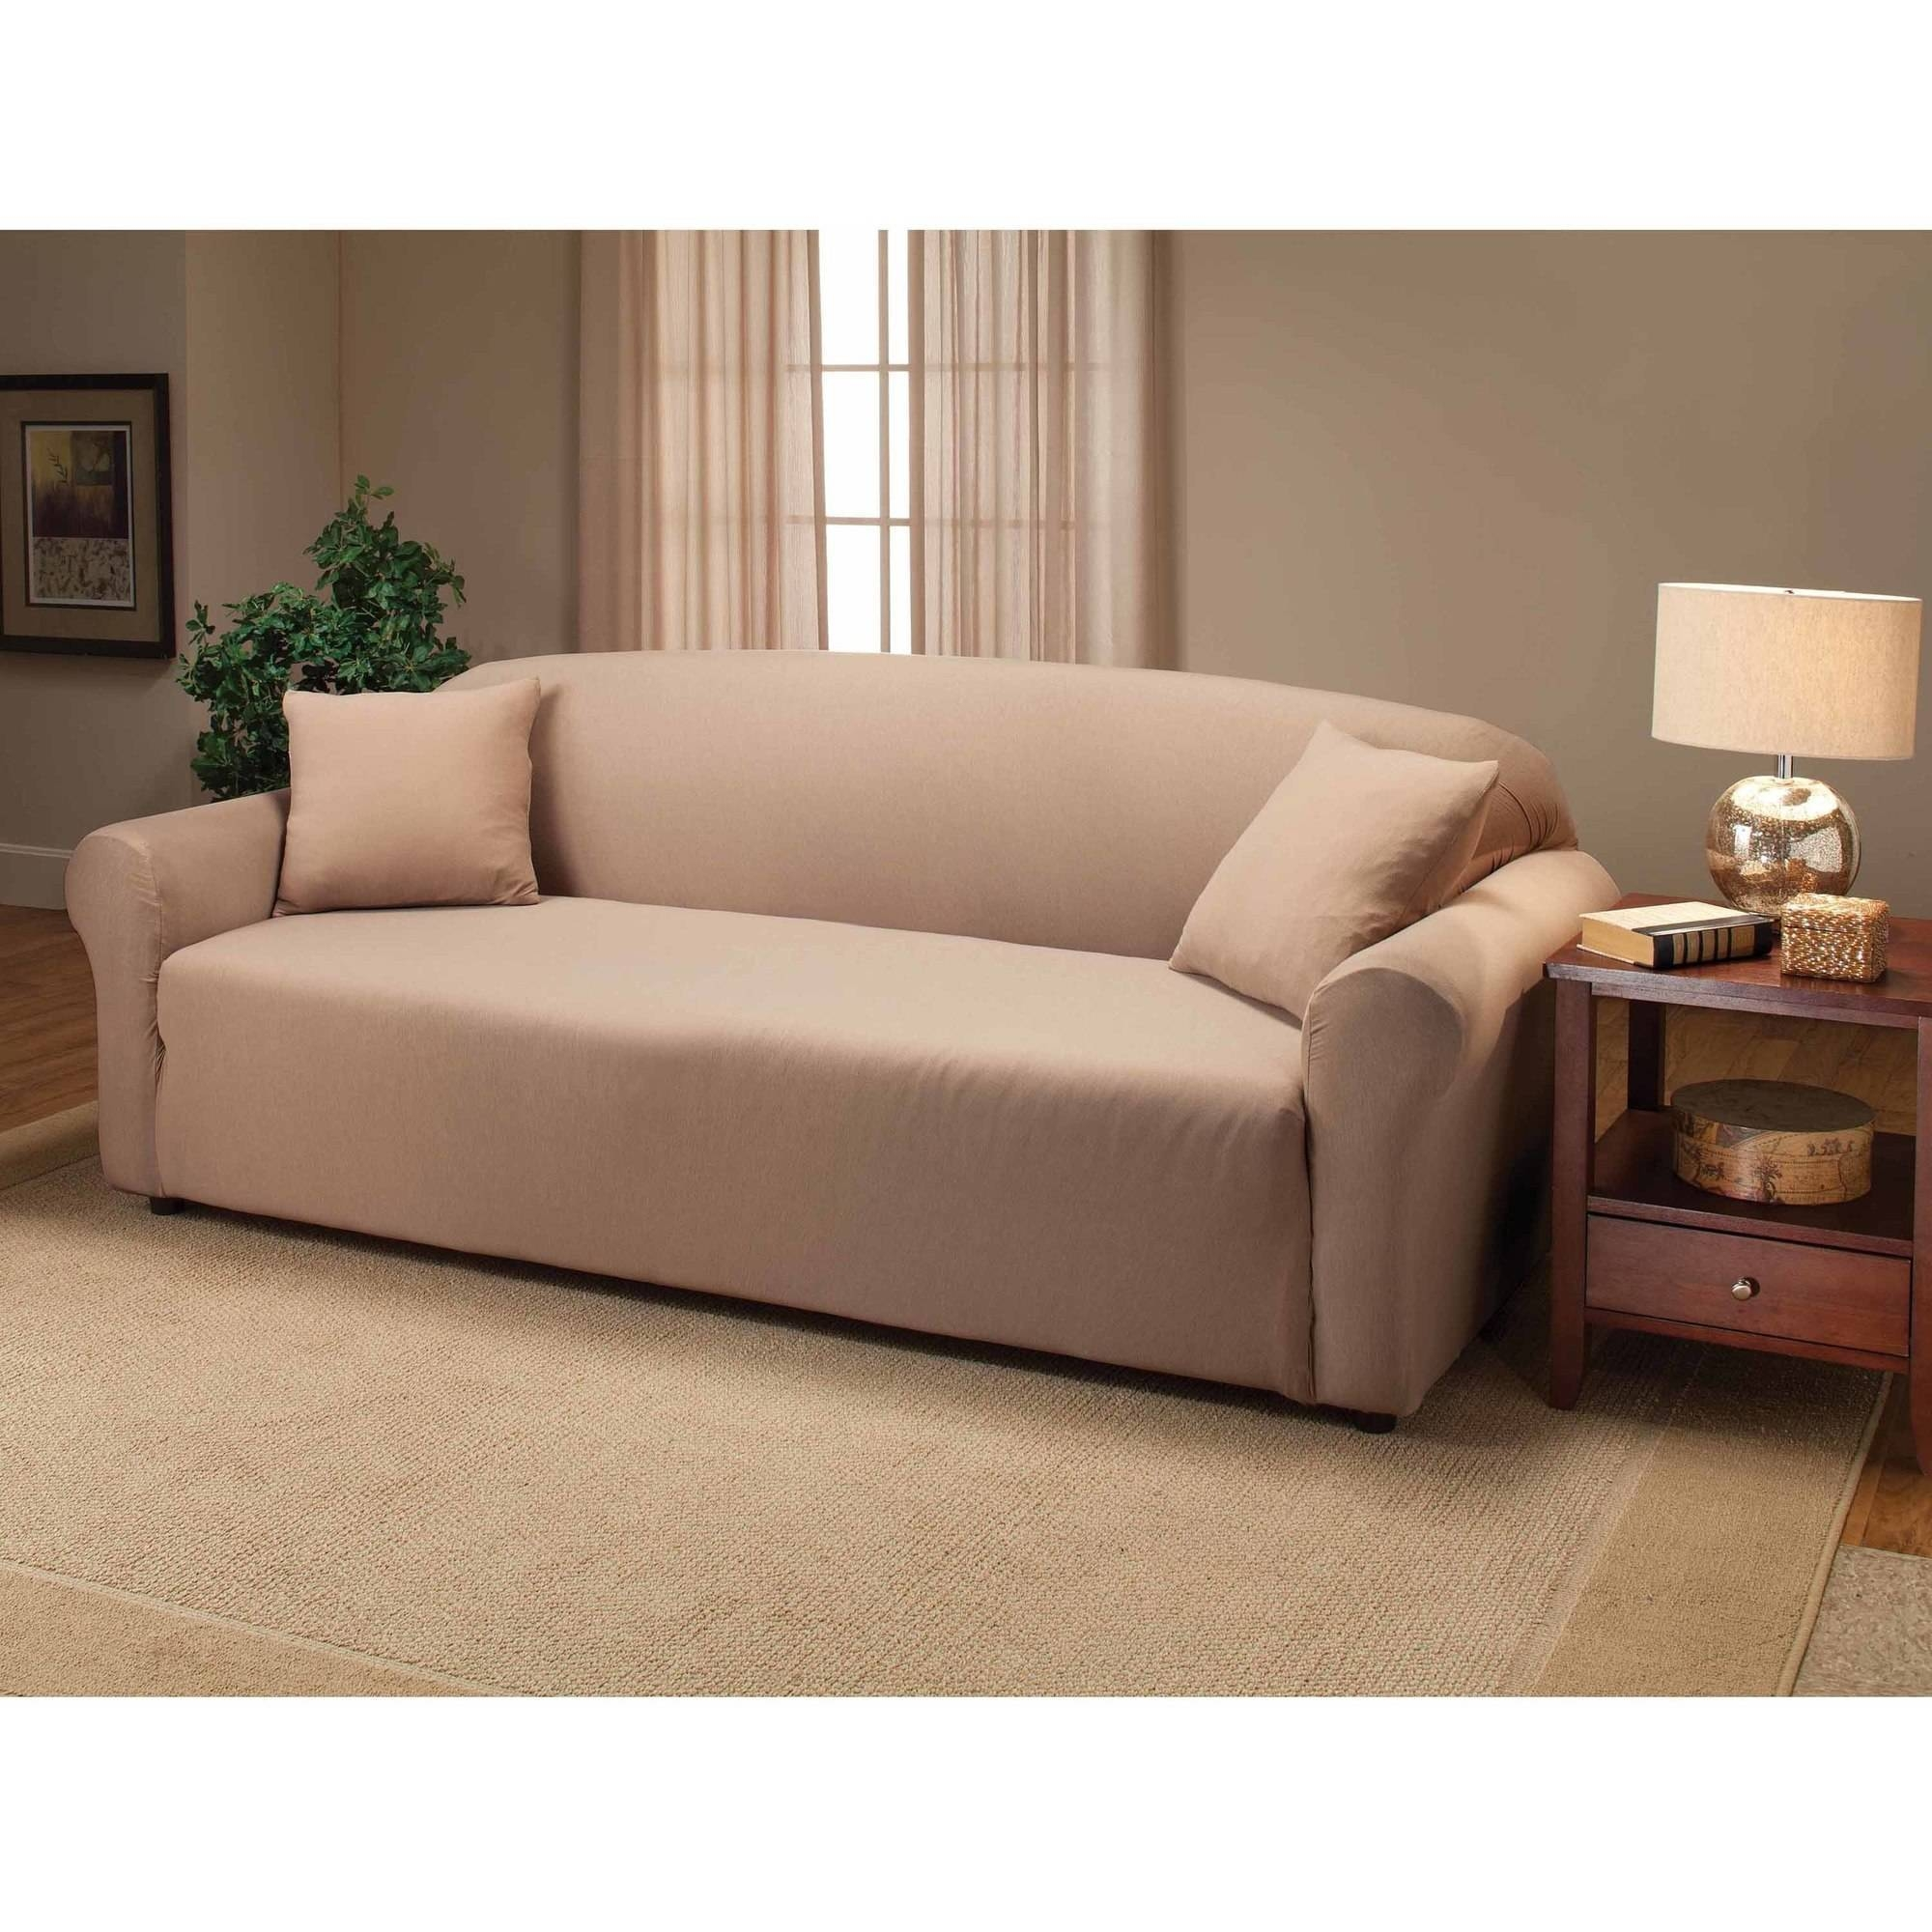 Slipcovers - Walmart for Sofa and Loveseat Covers (Image 11 of 15)